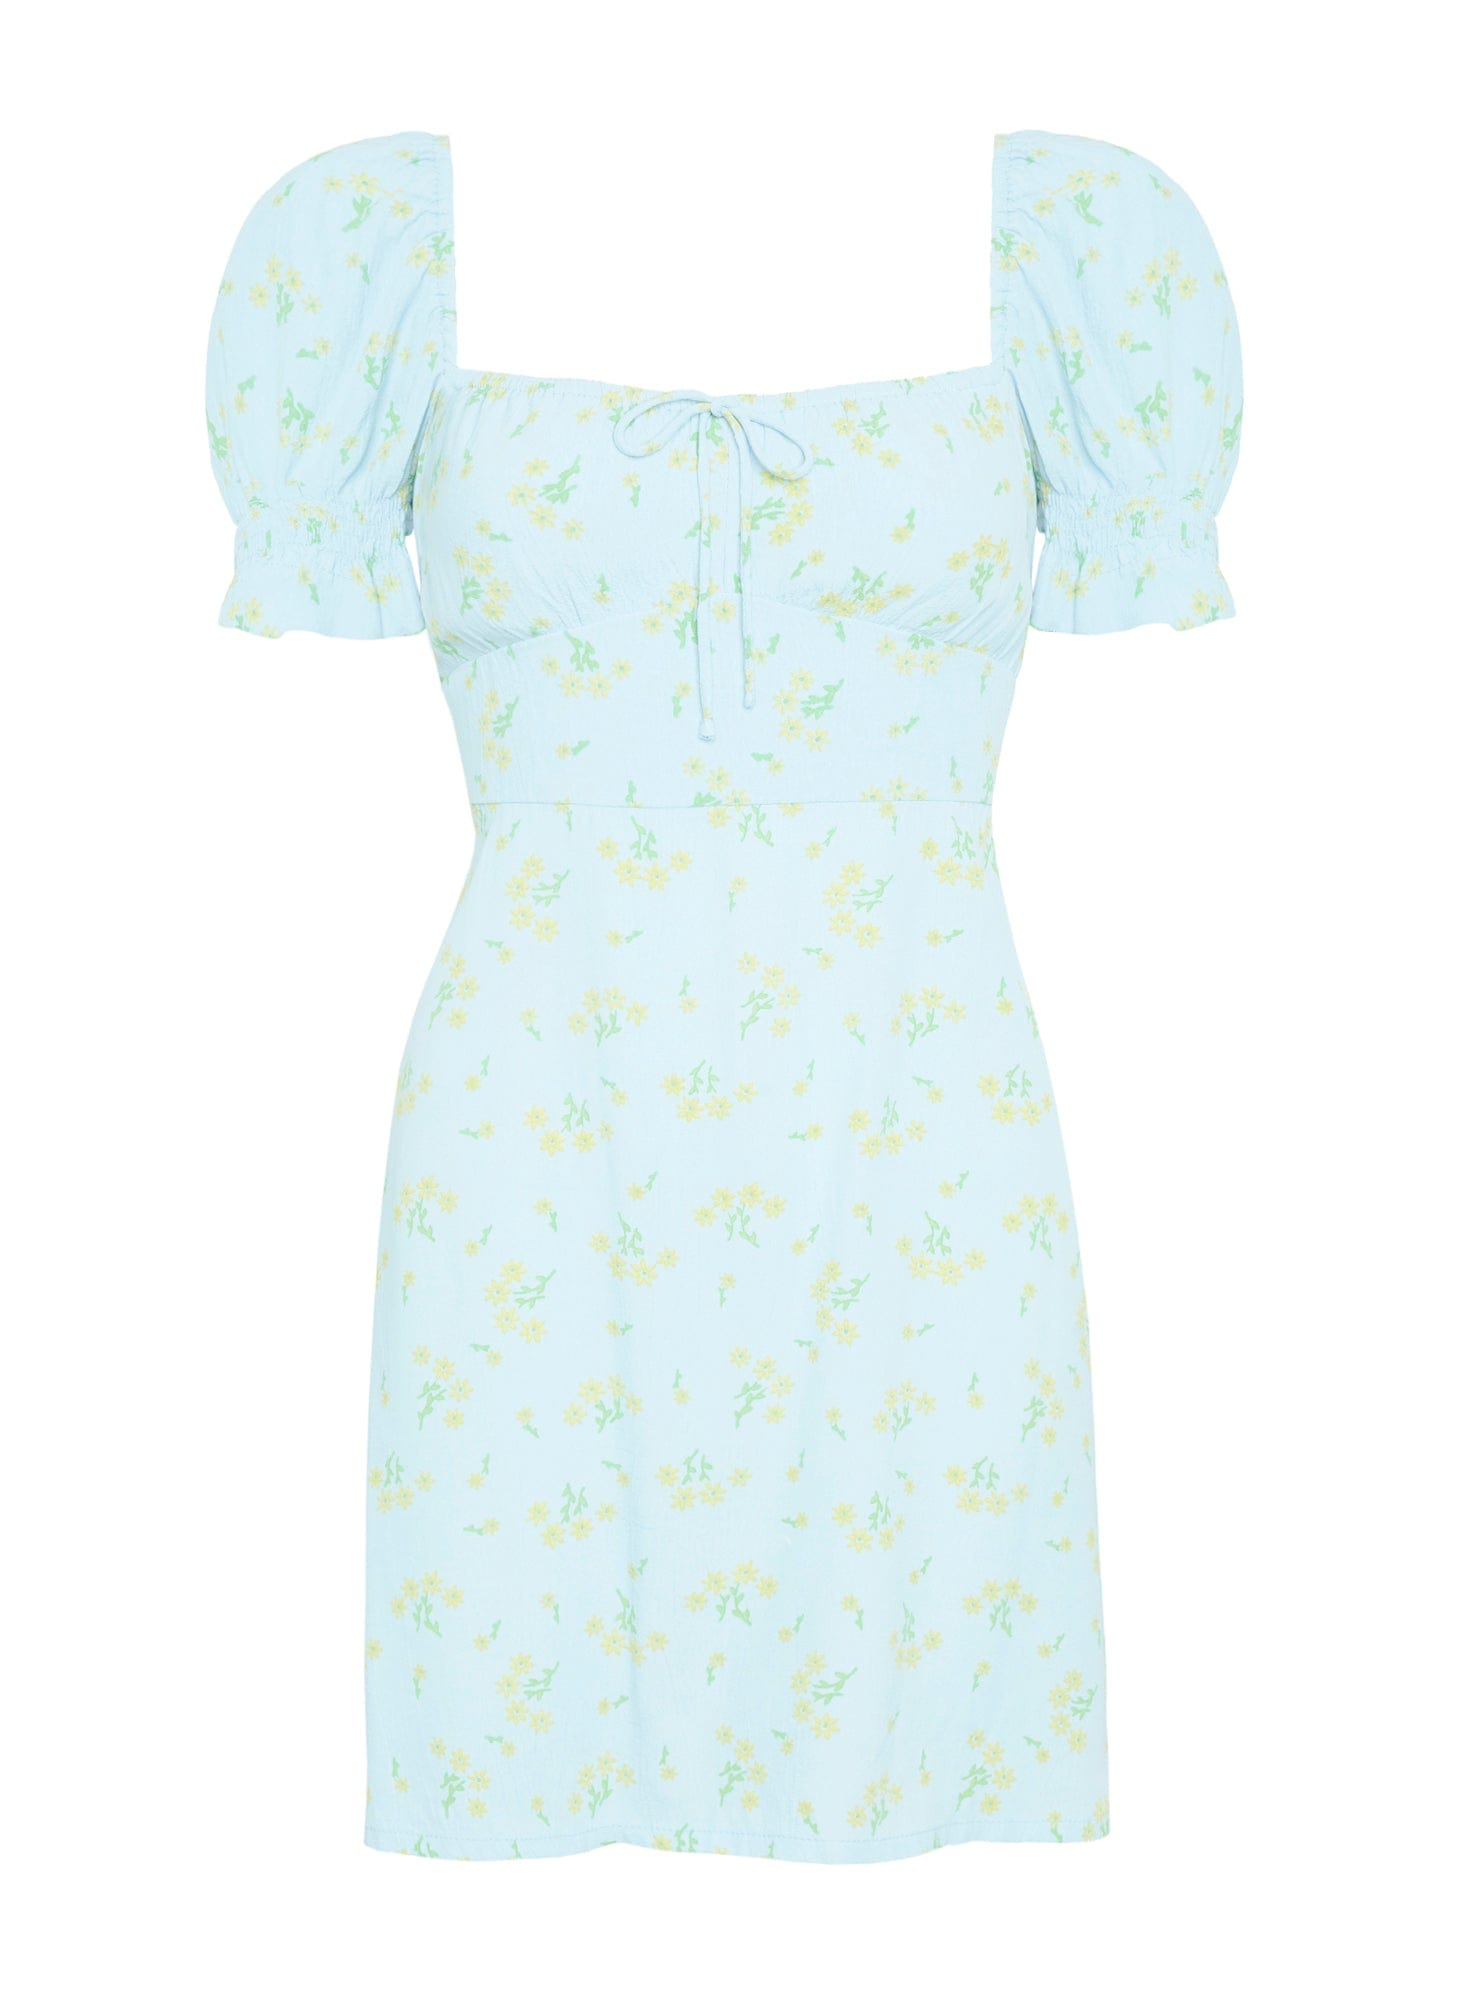 DARIA FLORAL PRINT - IRIS MINI DRESS